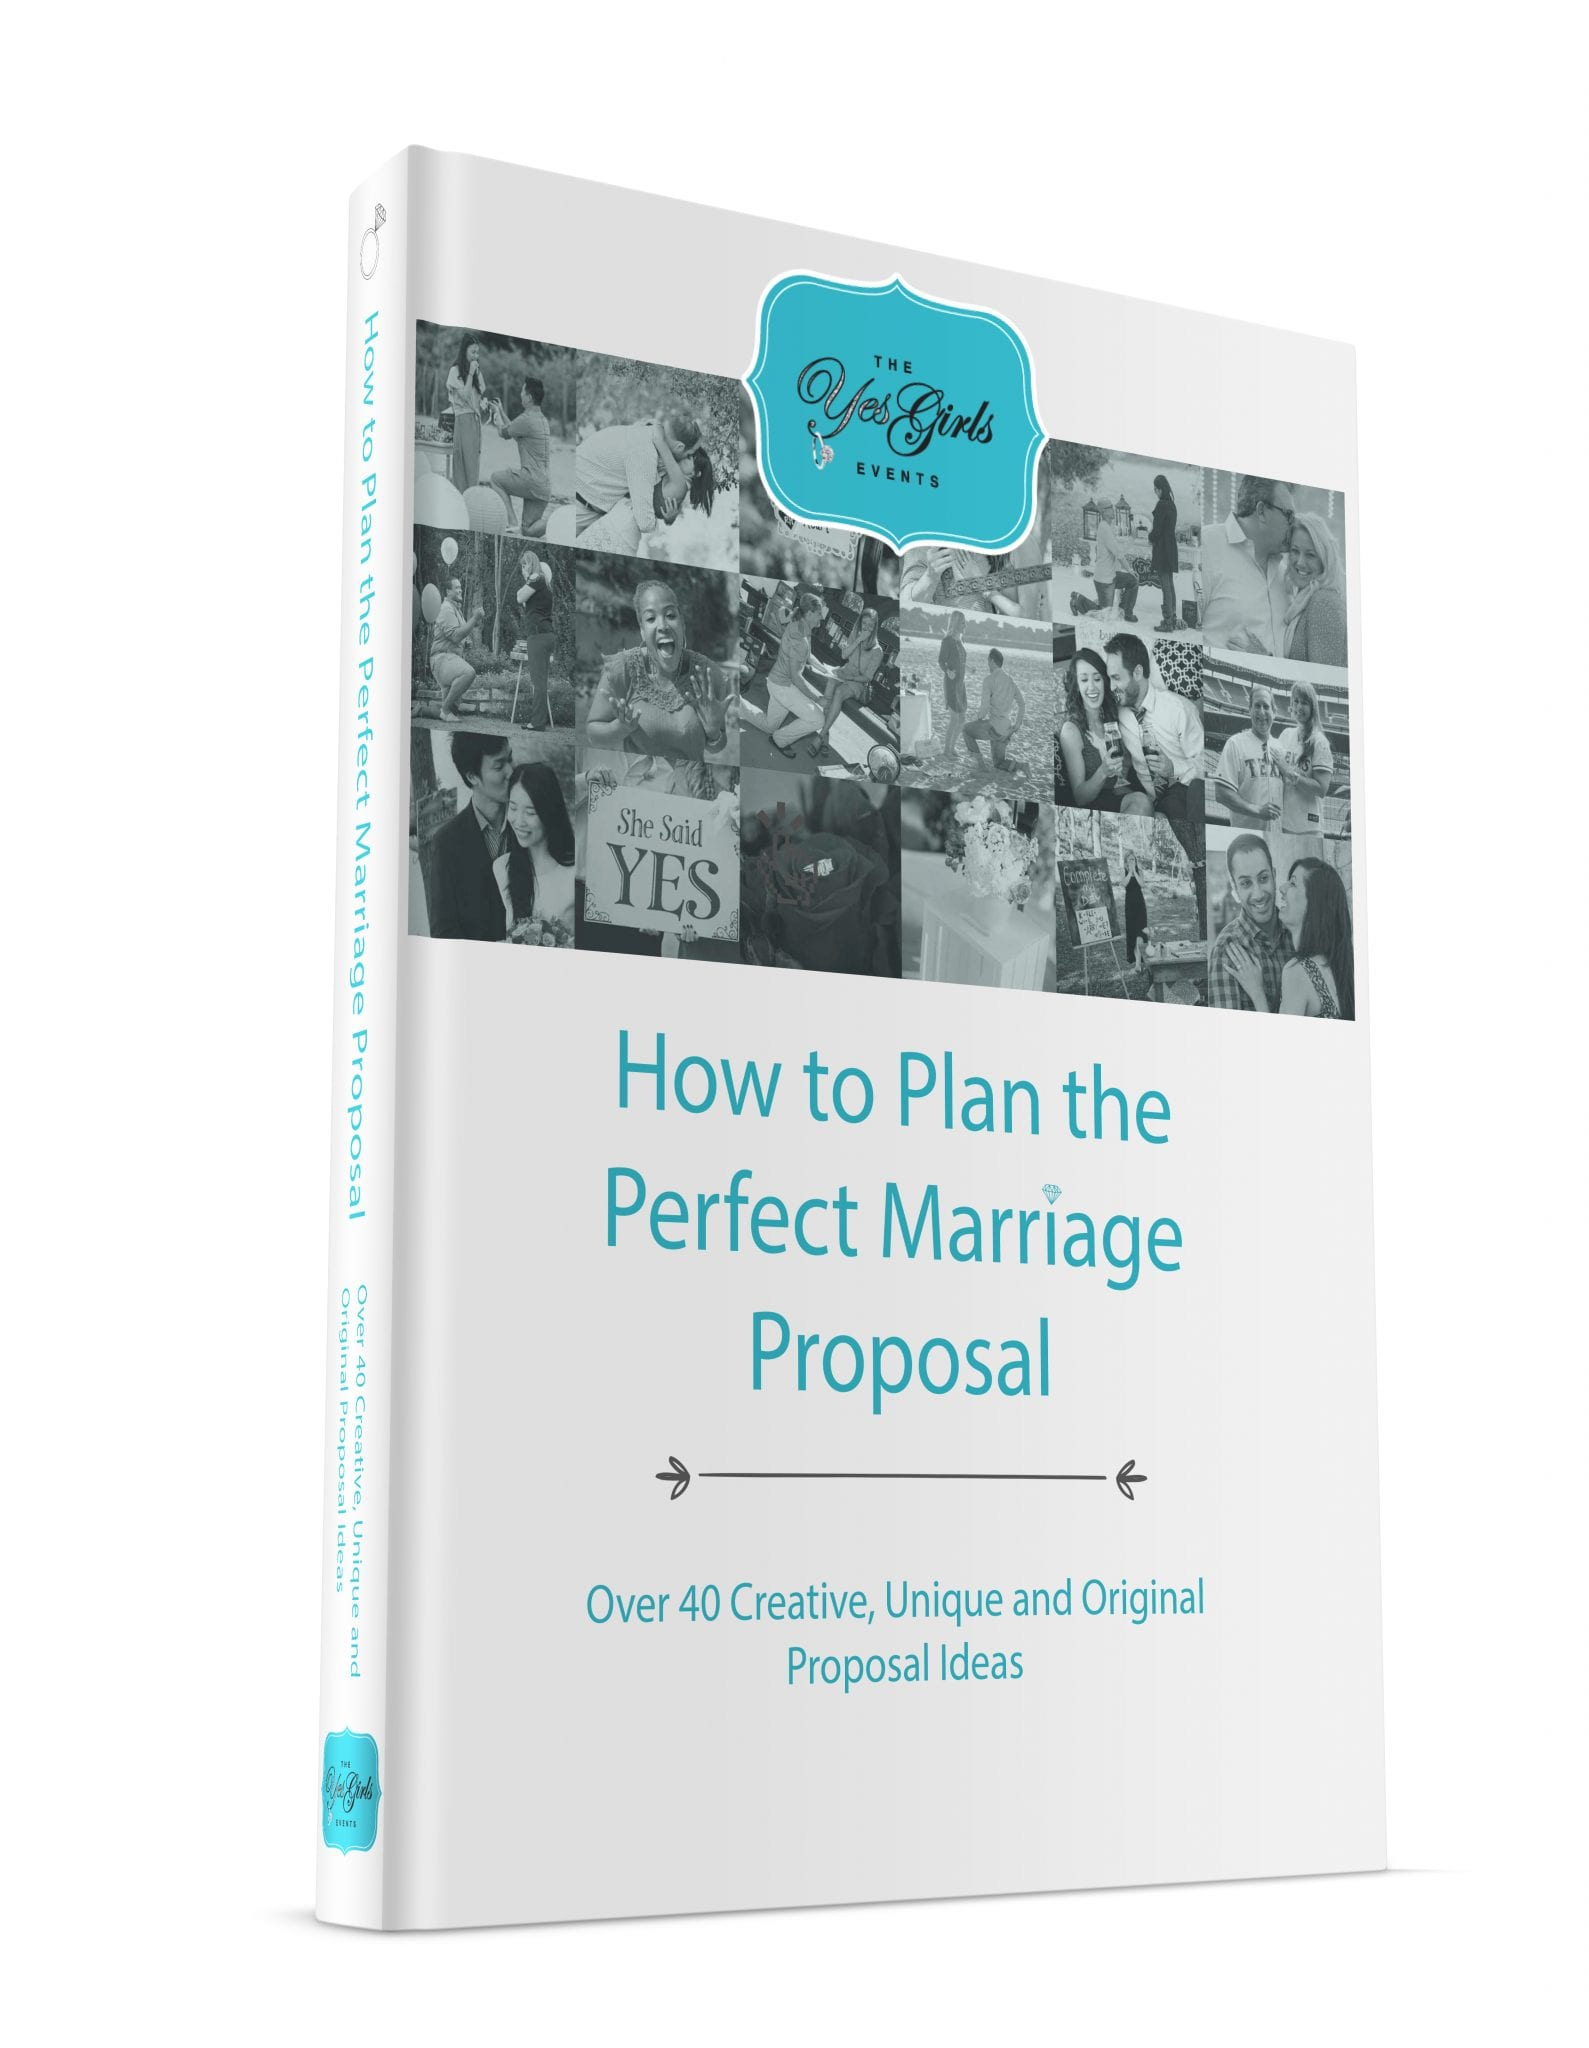 Product---Perfect-Marriage-Proposal-eBook-1